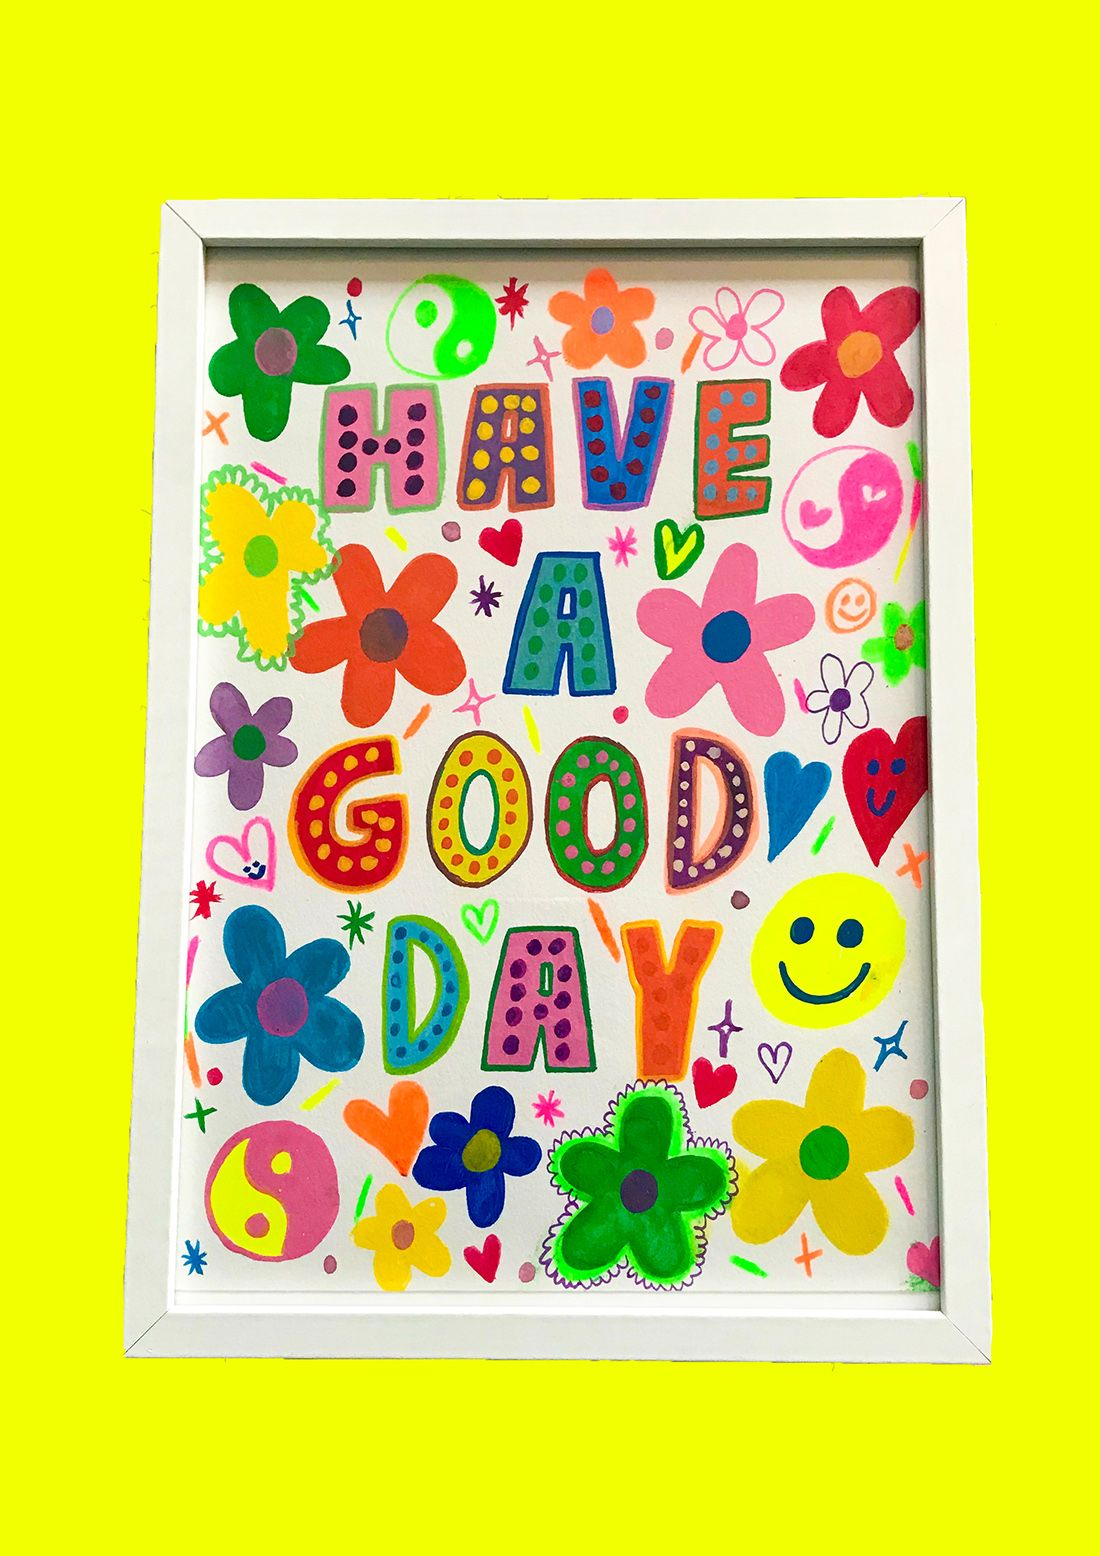 HAVE A GOOD DAY - A4 Gouache/mixed media painting